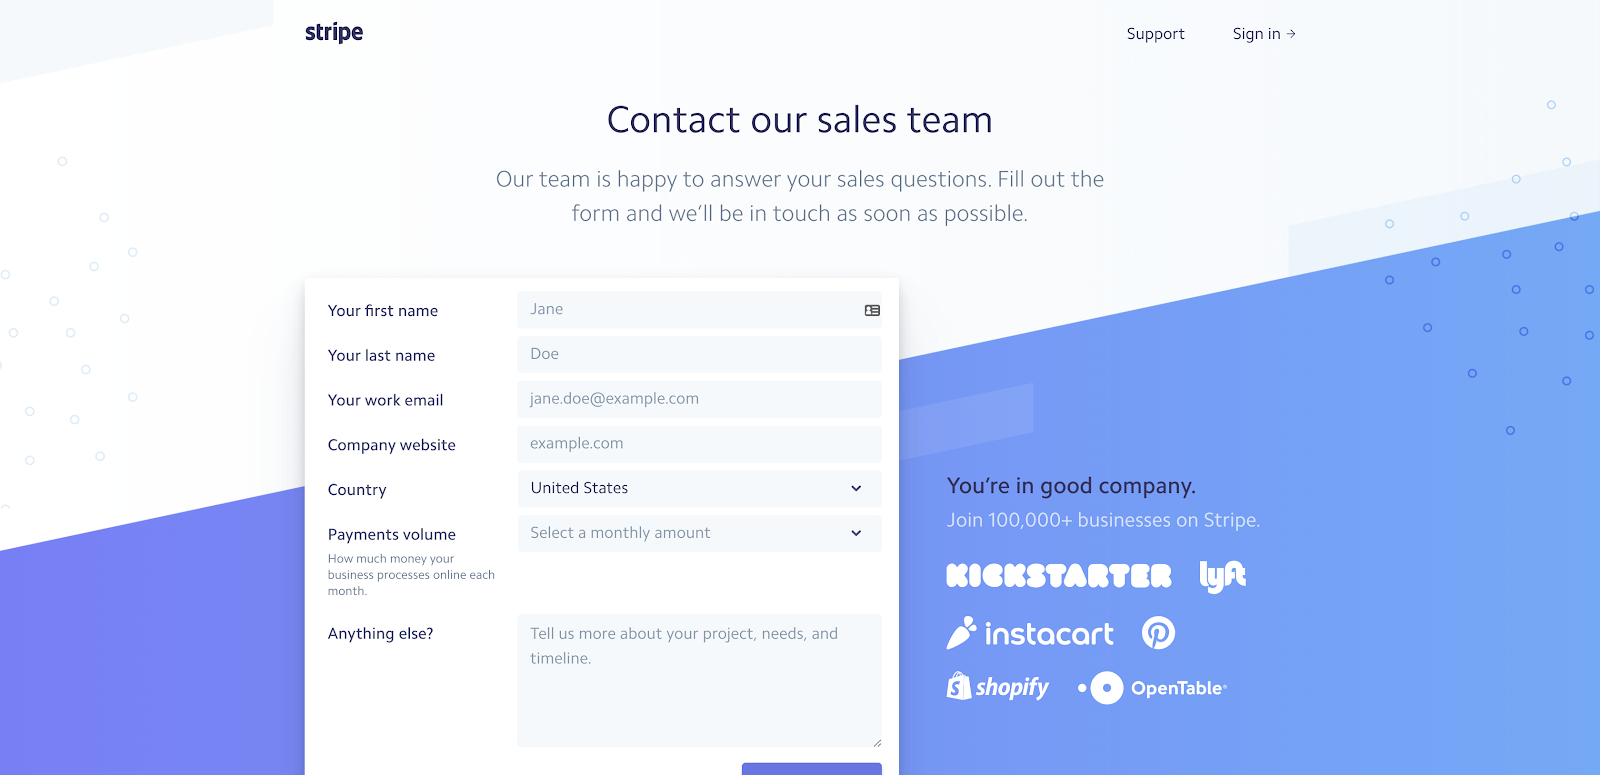 25 Best Contact Us Page Examples to Inspire Yours (Updated for 2020)